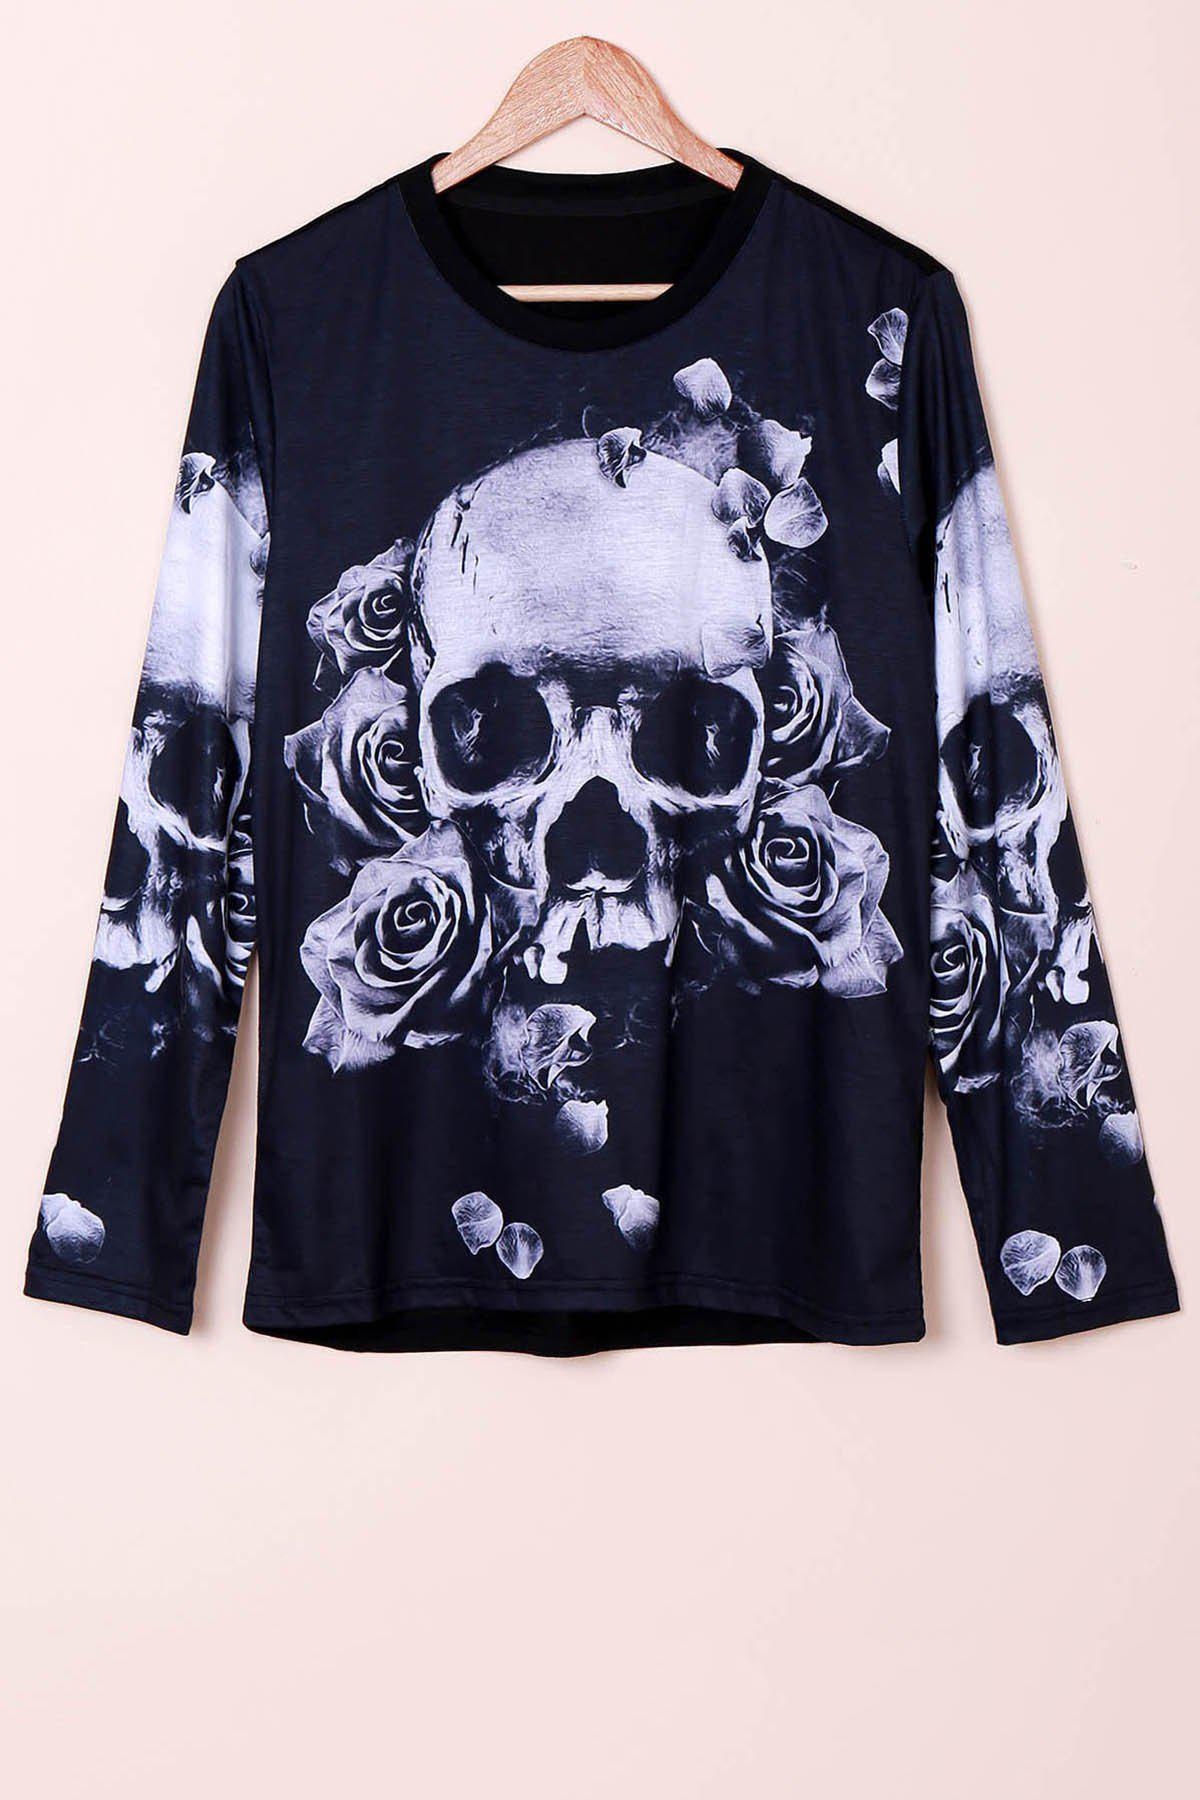 Men's Casual Long Sleeve Pullover Round Collar Skull Flower 3D Printing Sweatshirt - BLACK M